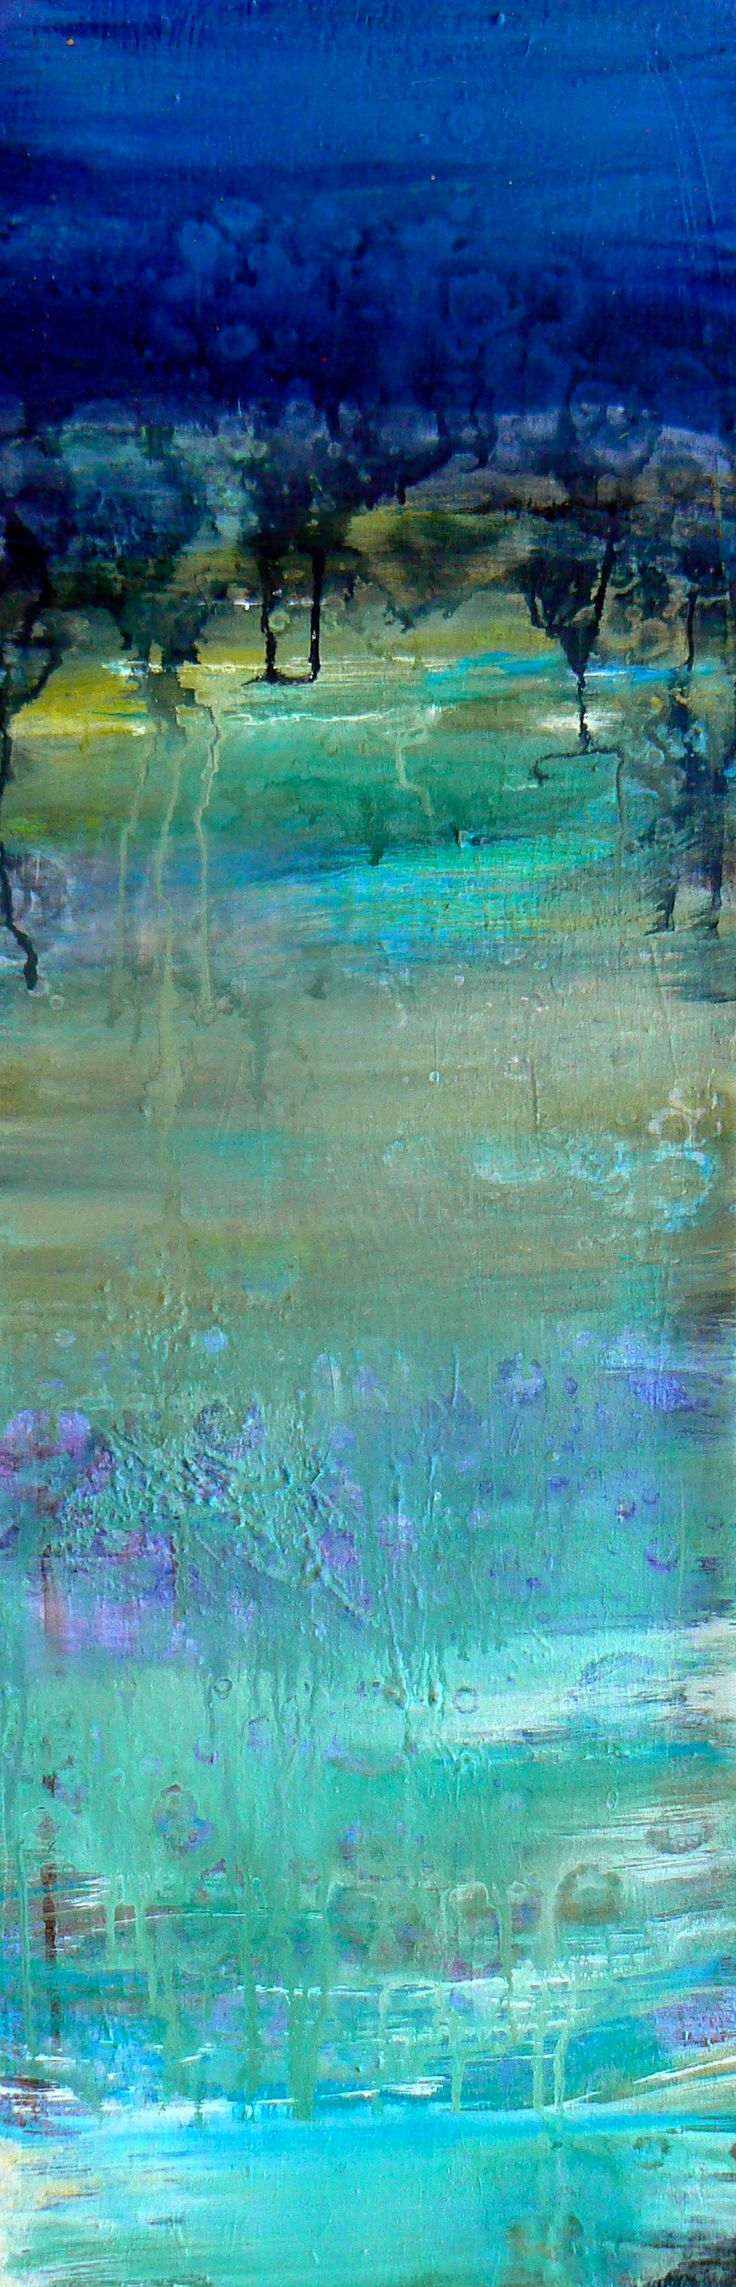 painting in teal blue, turquoise & green - ©Amy Longcope - www.amylongcope.com/thumbnail_list.php?mgd_id=18496#.UKroLeRY6So